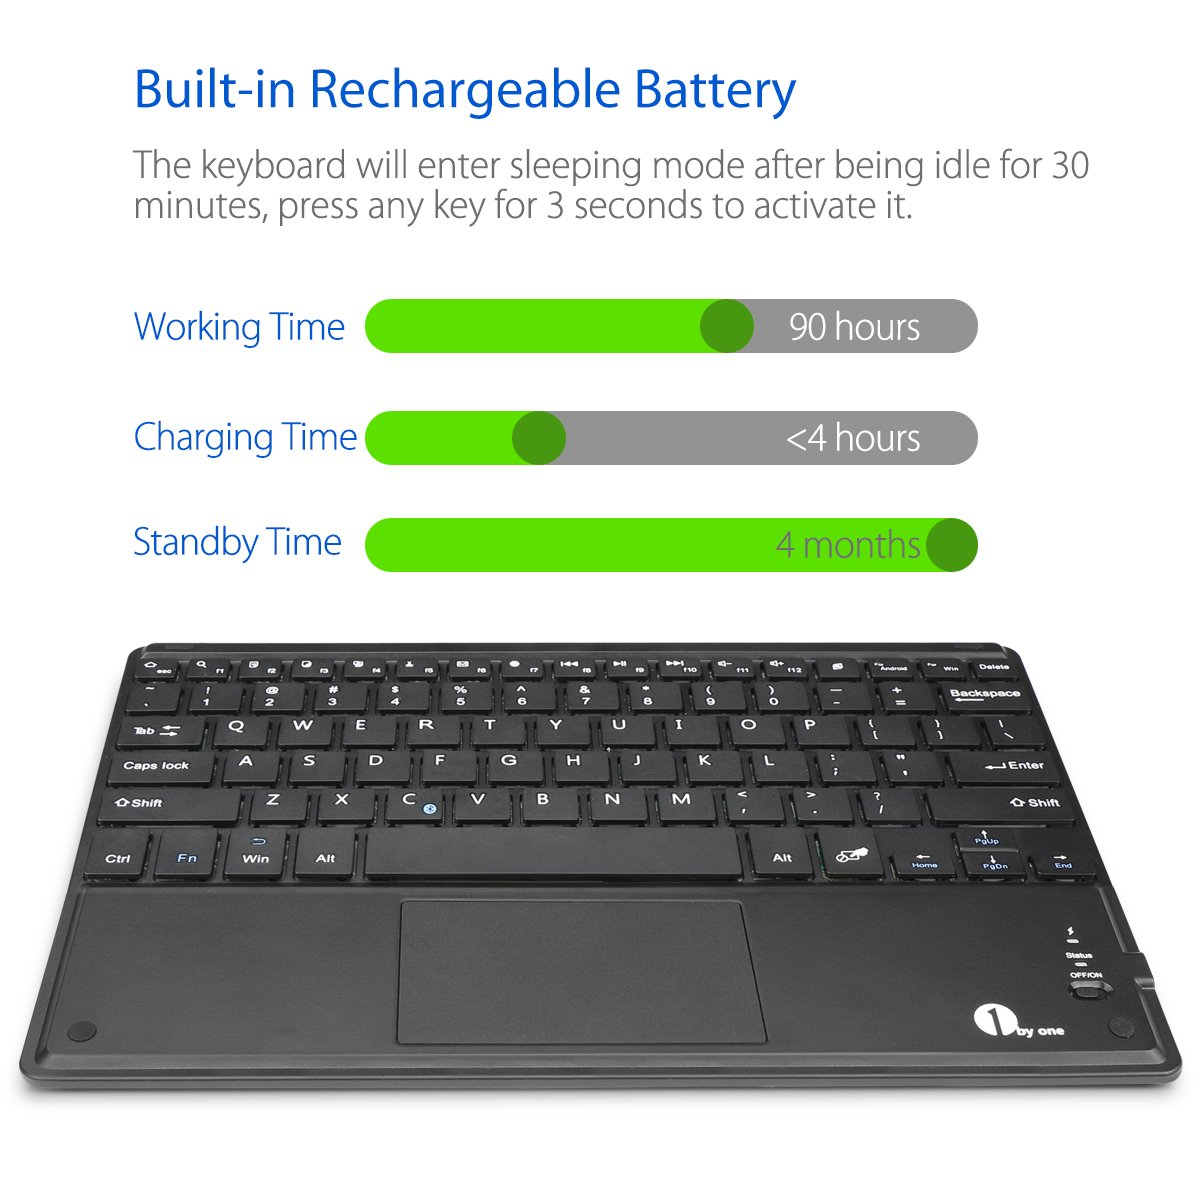 1byone Ultra-Slim Wireless Bluetooth Keyboard with Built-in Multi-touch Touchpad and Rechargeable Battery for Android and Windows, Black by 1byone (Image #5)